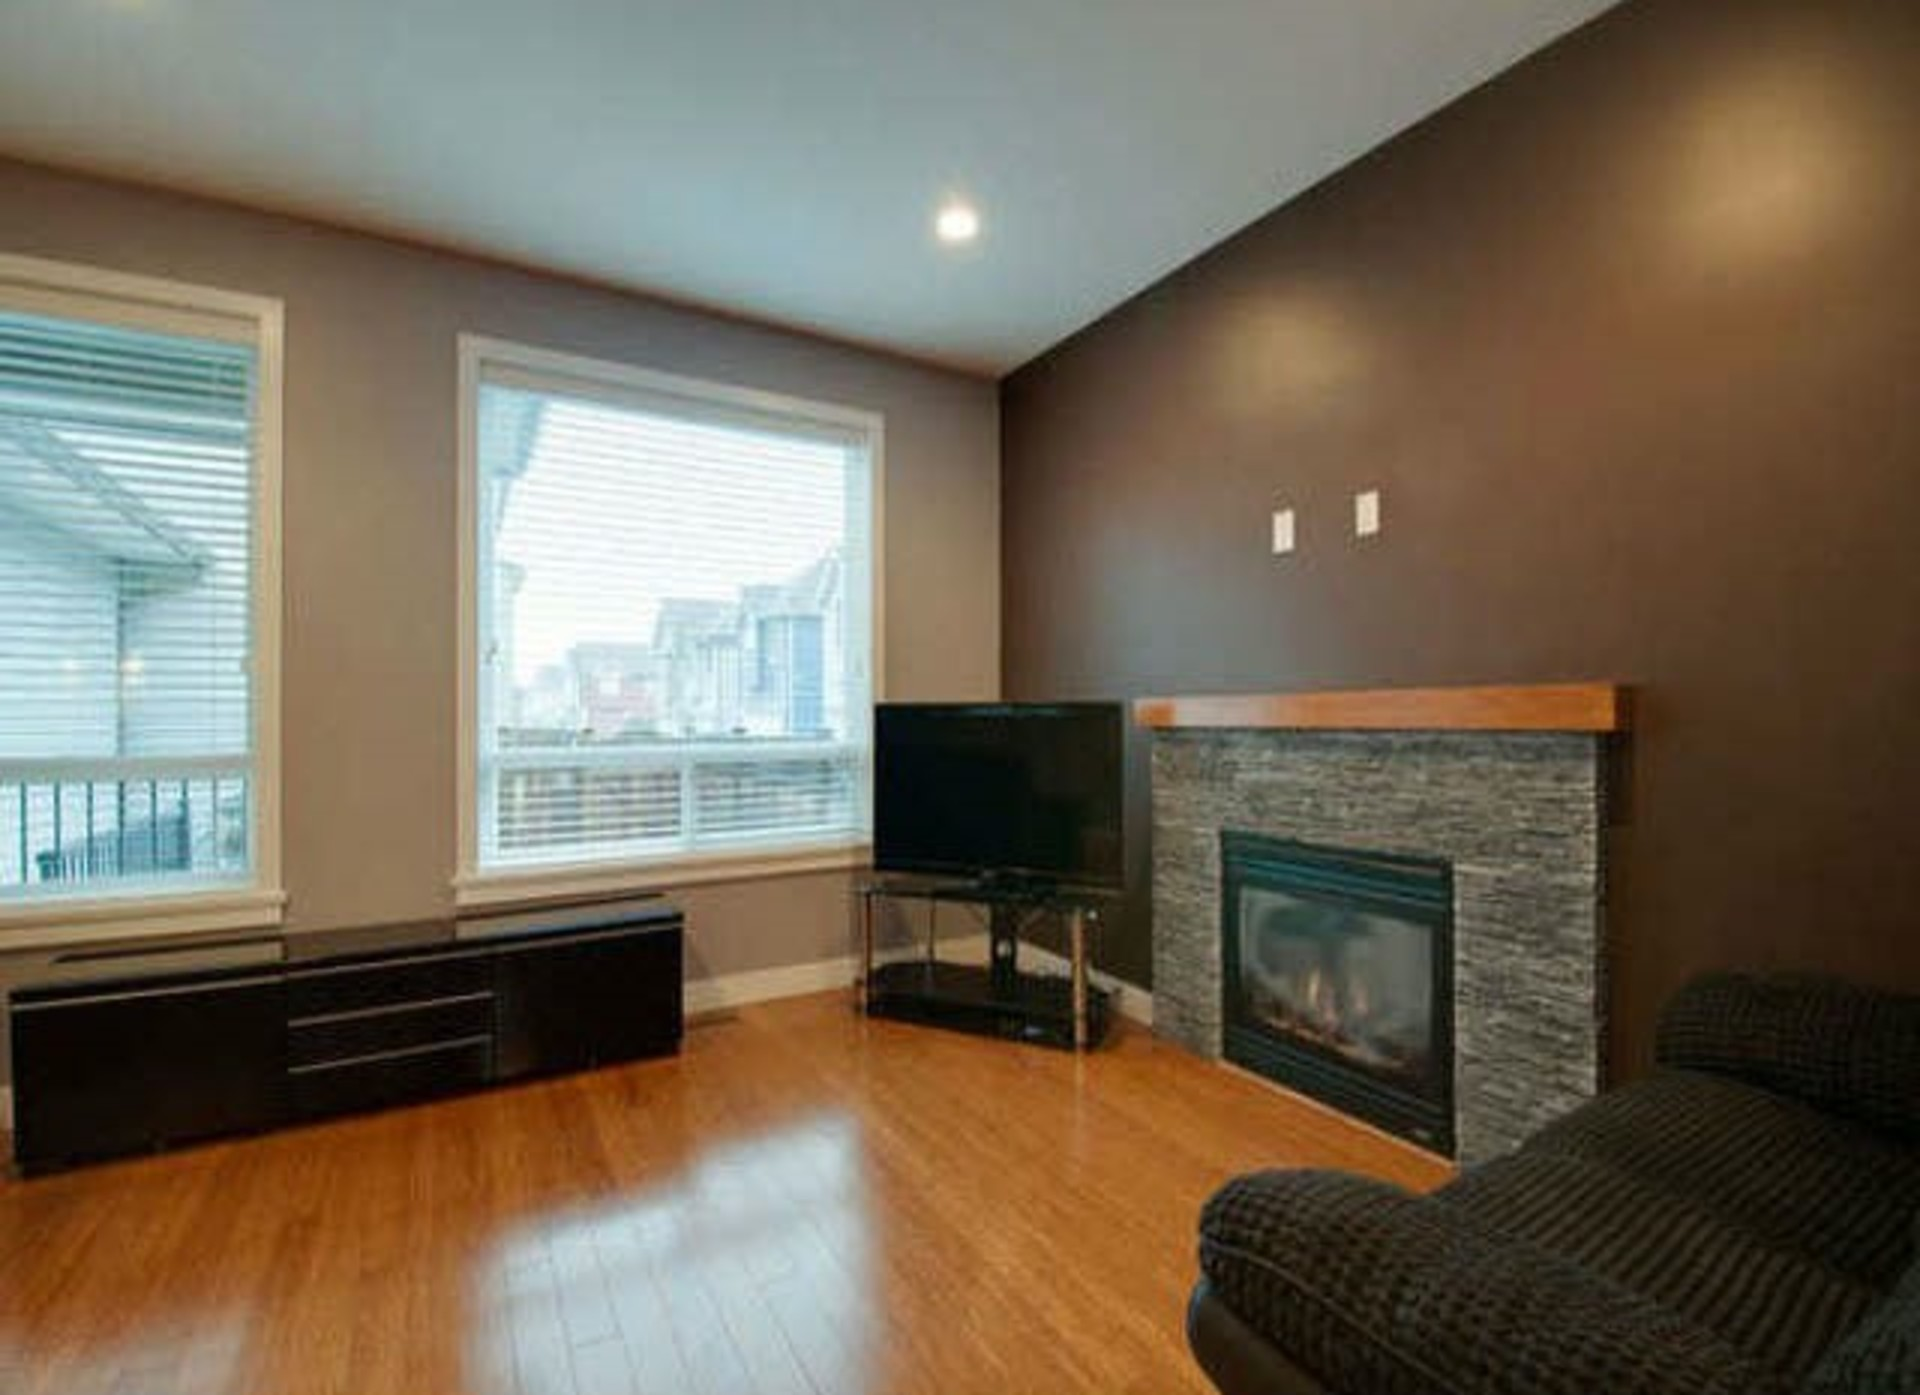 260124961-1 at 19222 70th Avenue, Clayton, Cloverdale